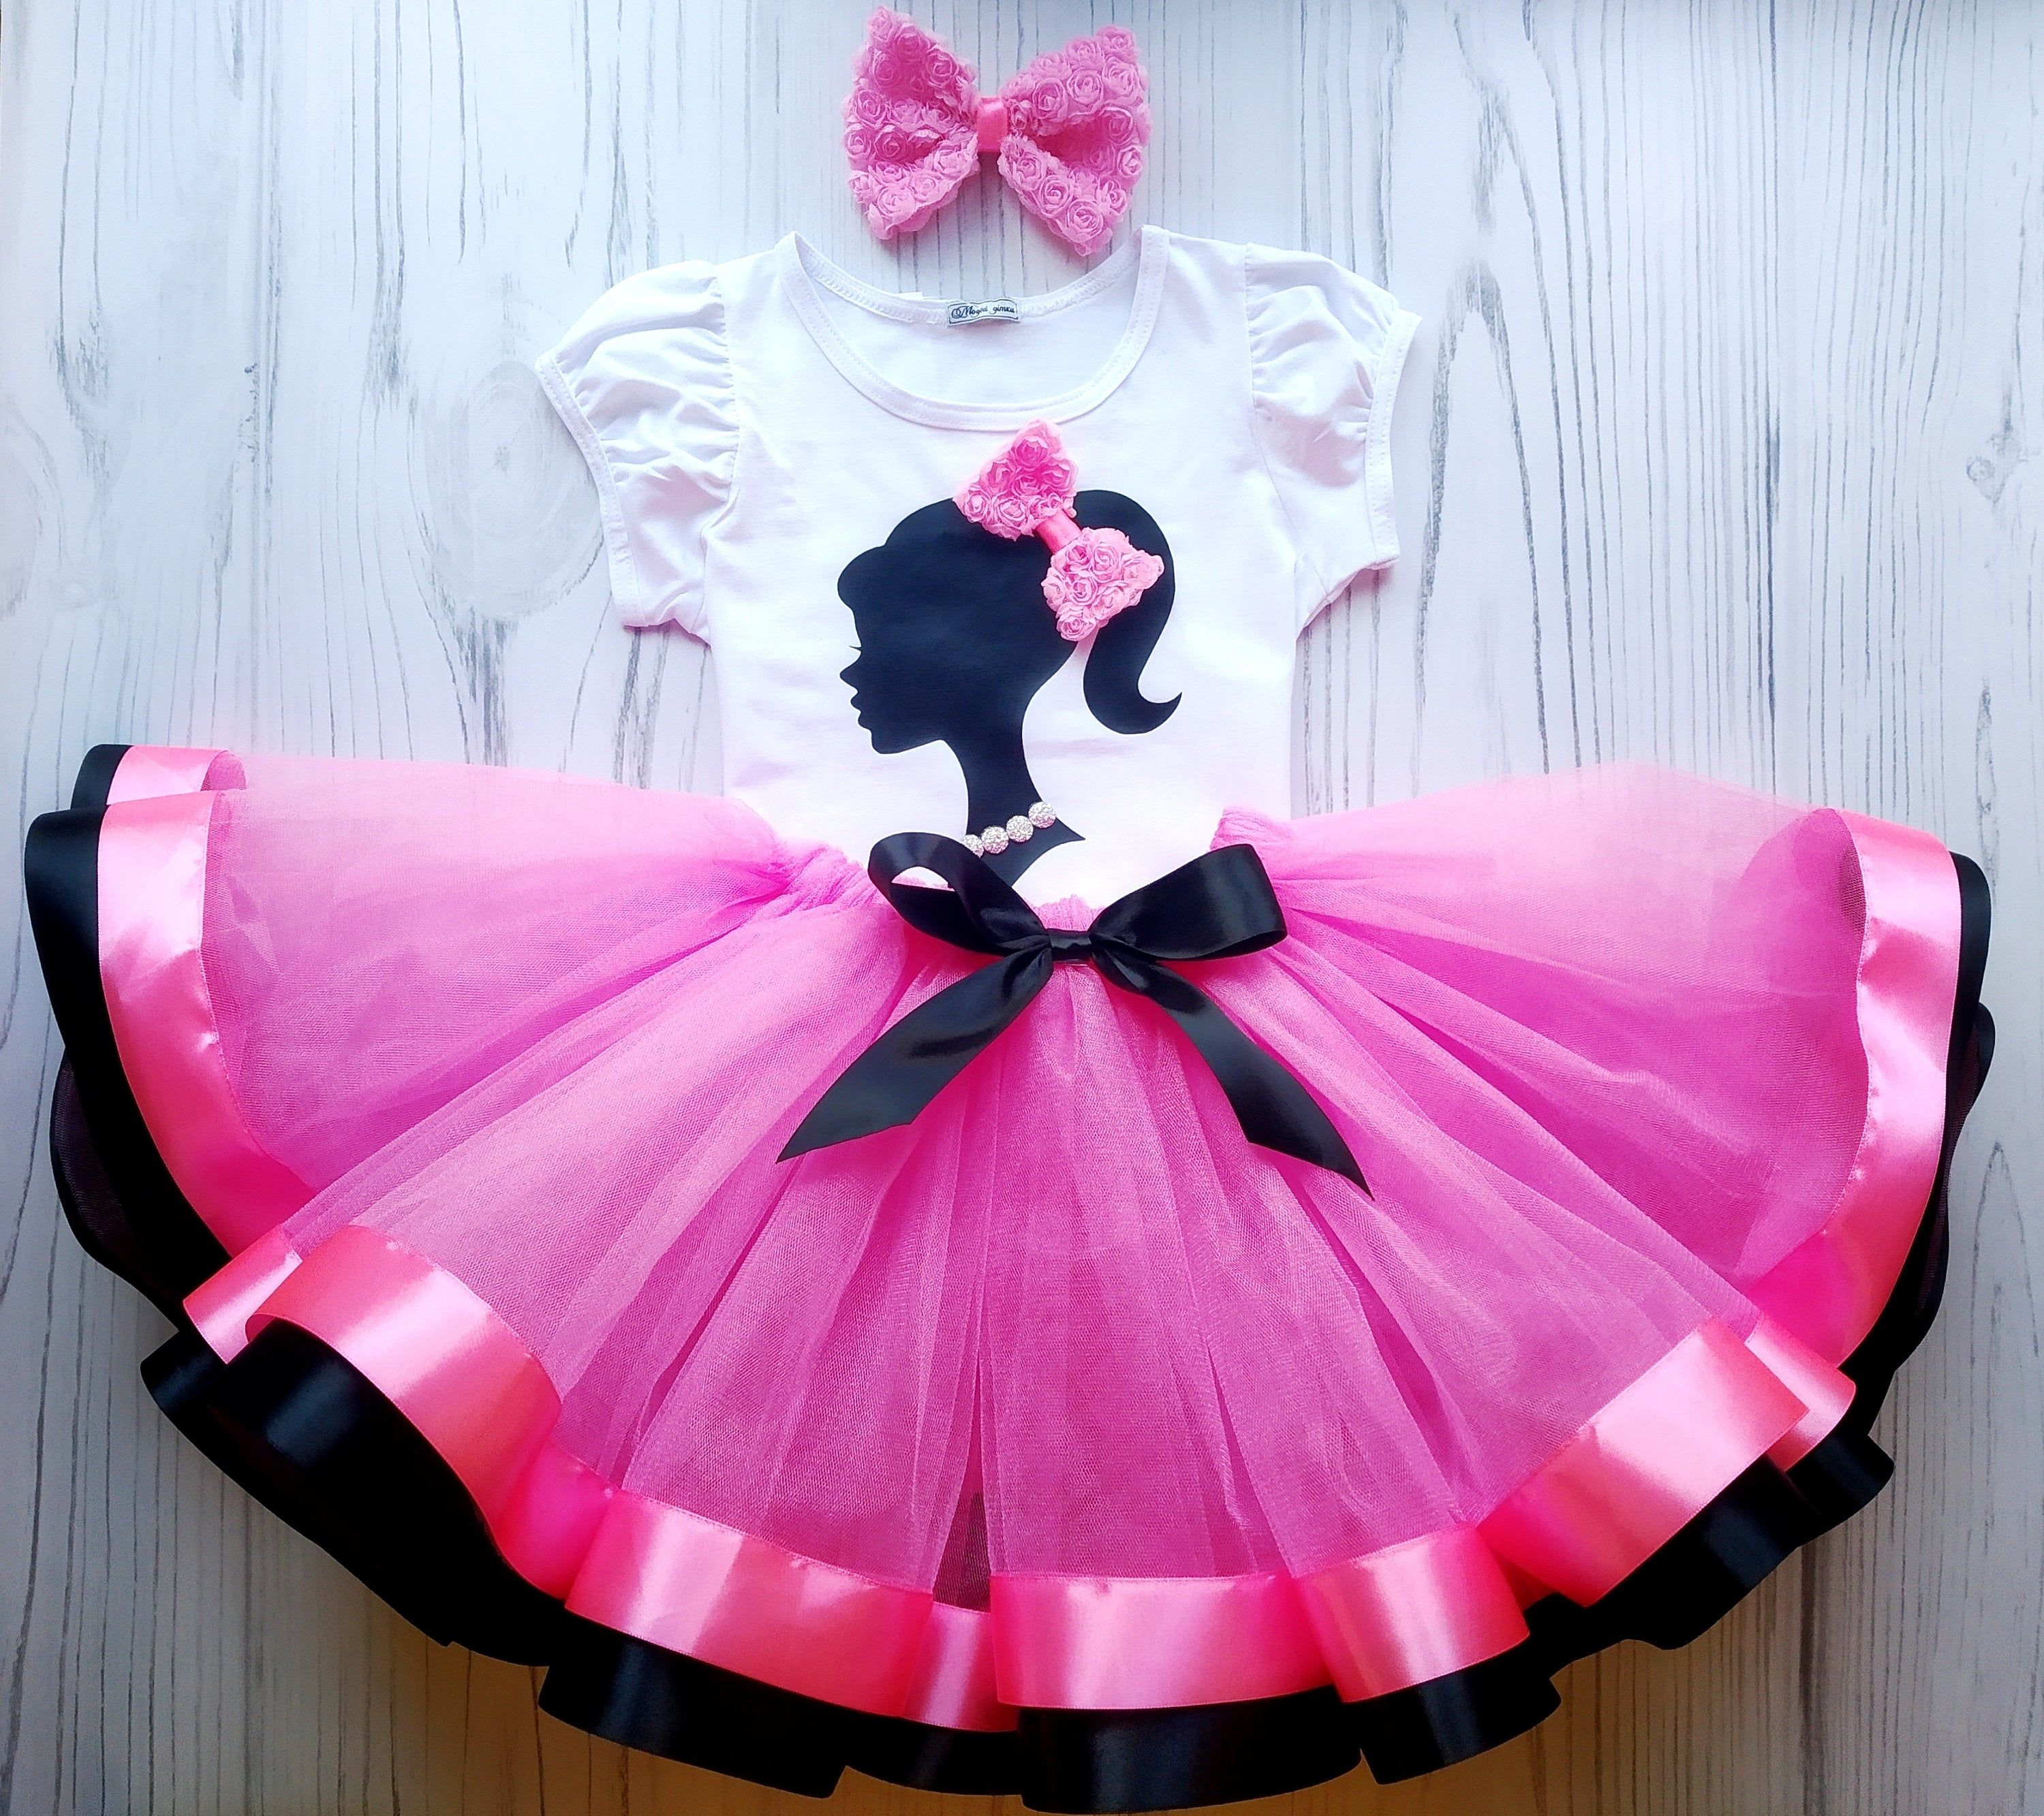 Barbie birthday outfit pink barbie tutu outfit pink and